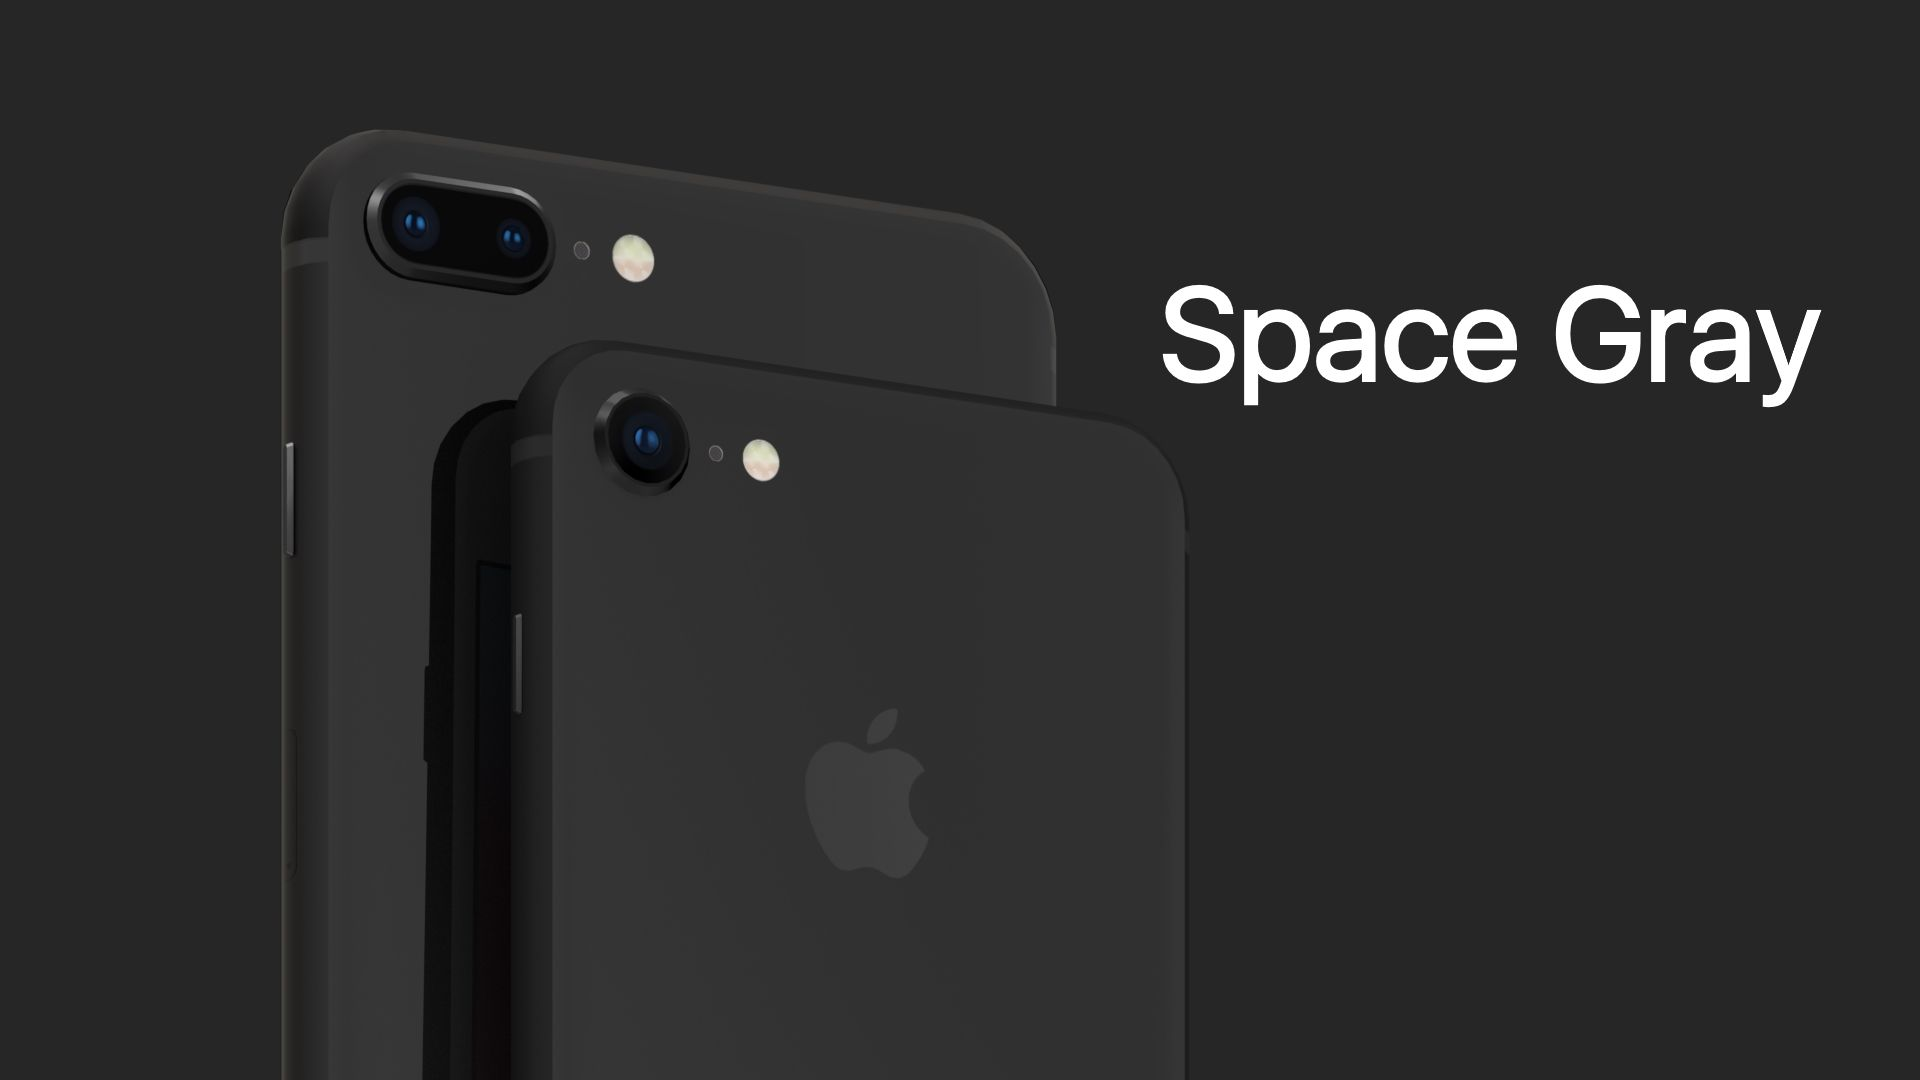 iPhone 8, a new generation of iPhone. Now available in SimCity! | Iphone 8  plus space grey, Iphone, Iphone 8